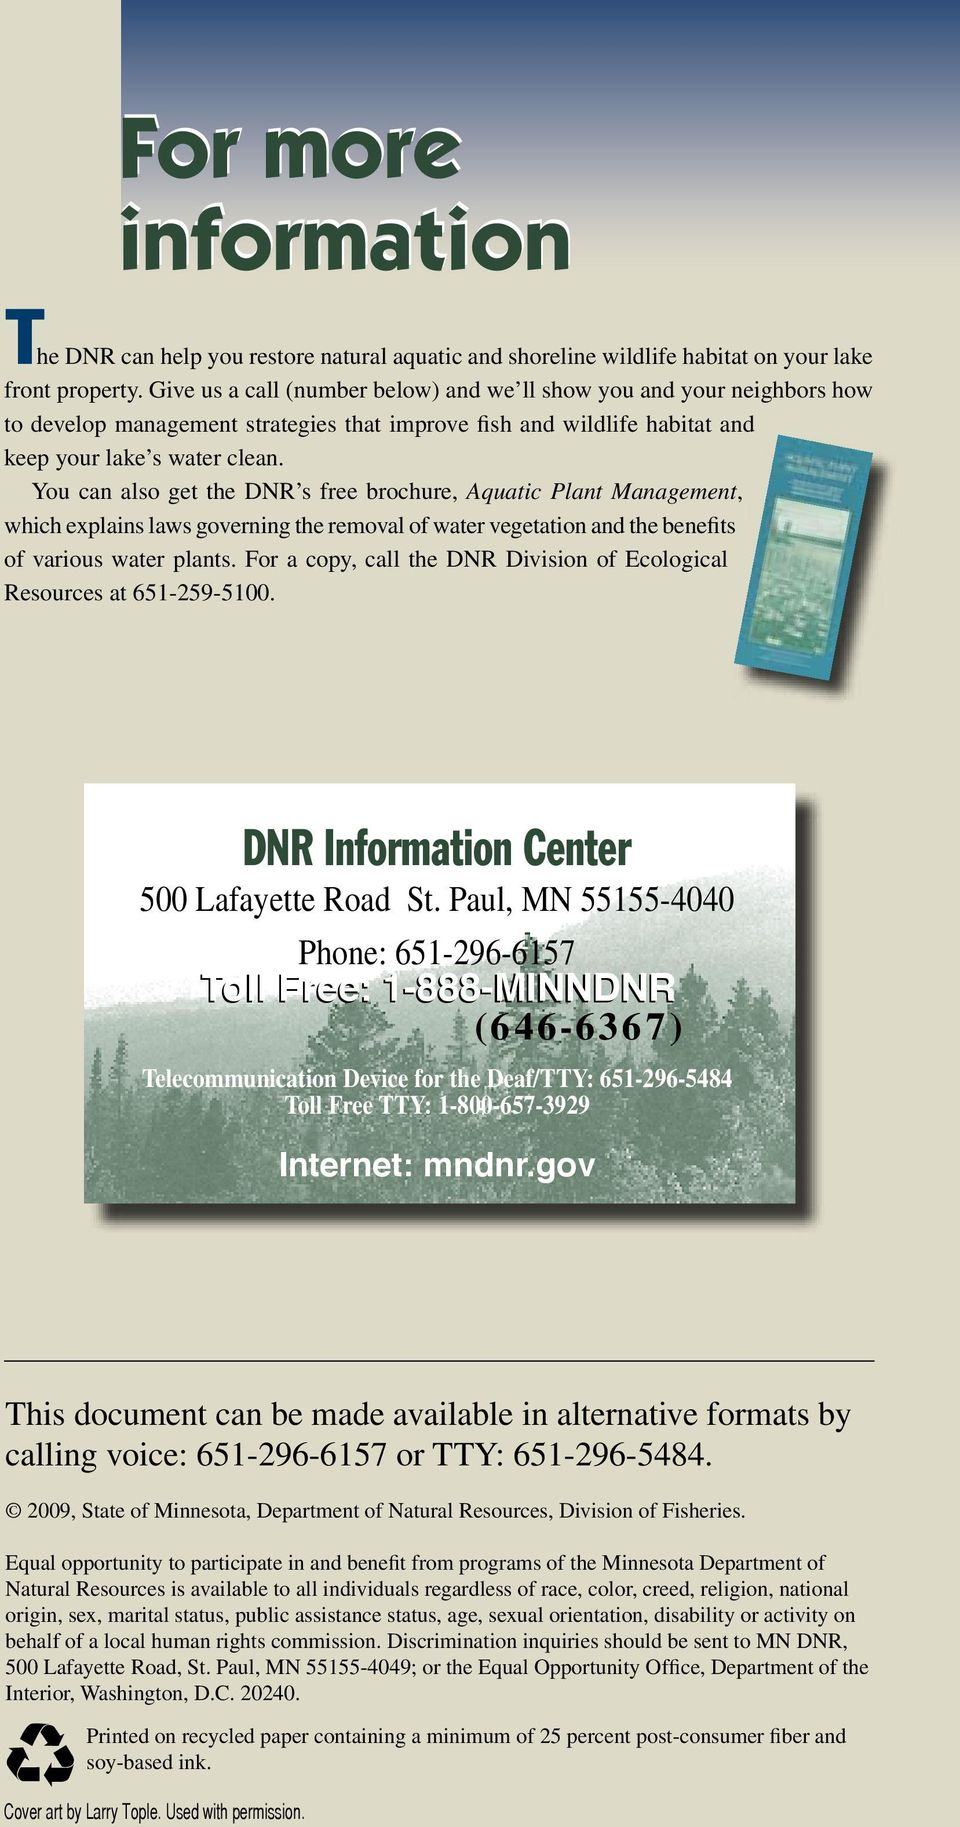 You can also get the DNR s free brochure, Aquatic Plant Management, which explains laws governing the removal of water vegetation and the benefits of various water plants.